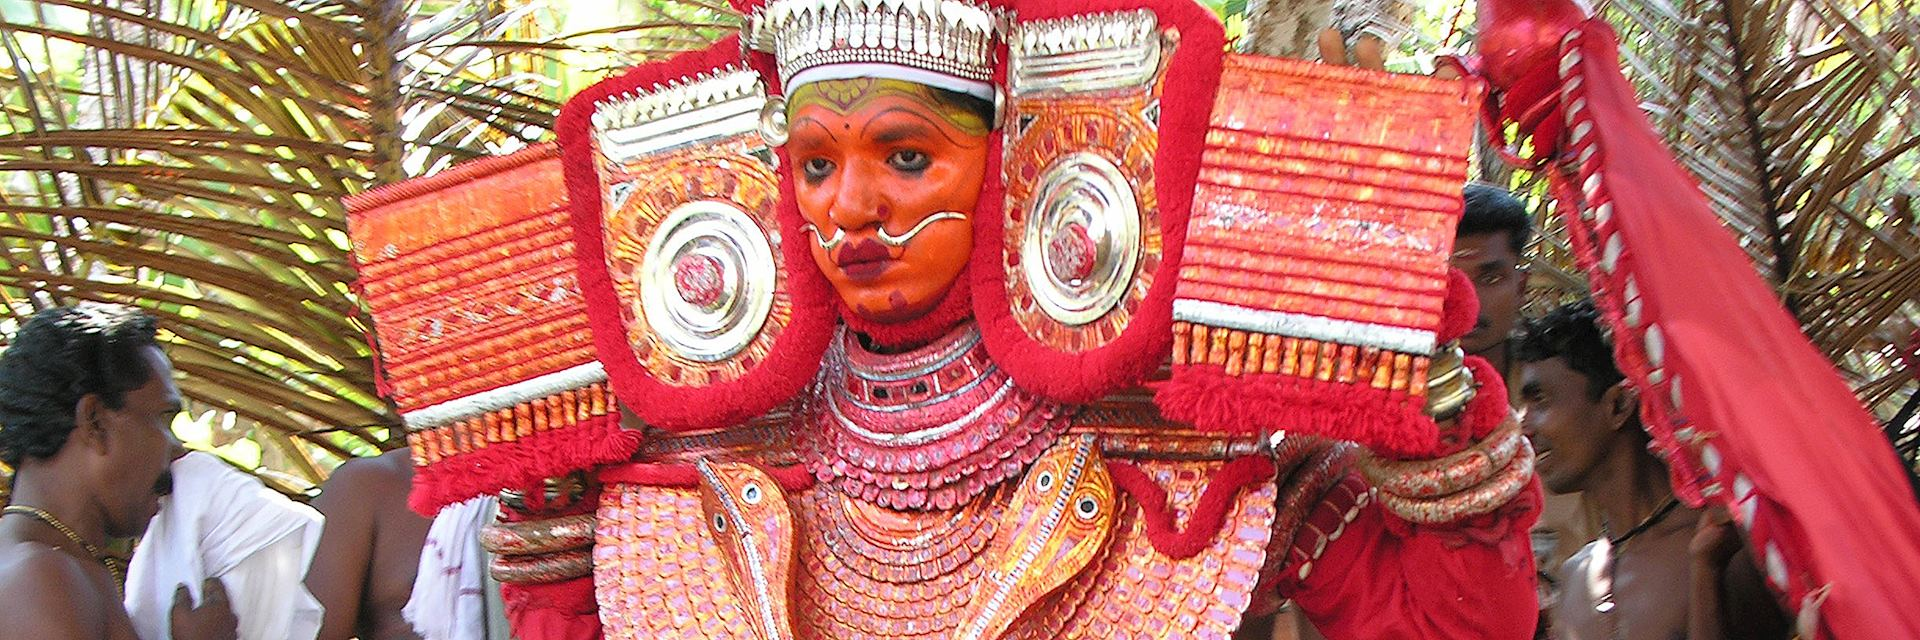 Theyyam dancer, Tellicherry